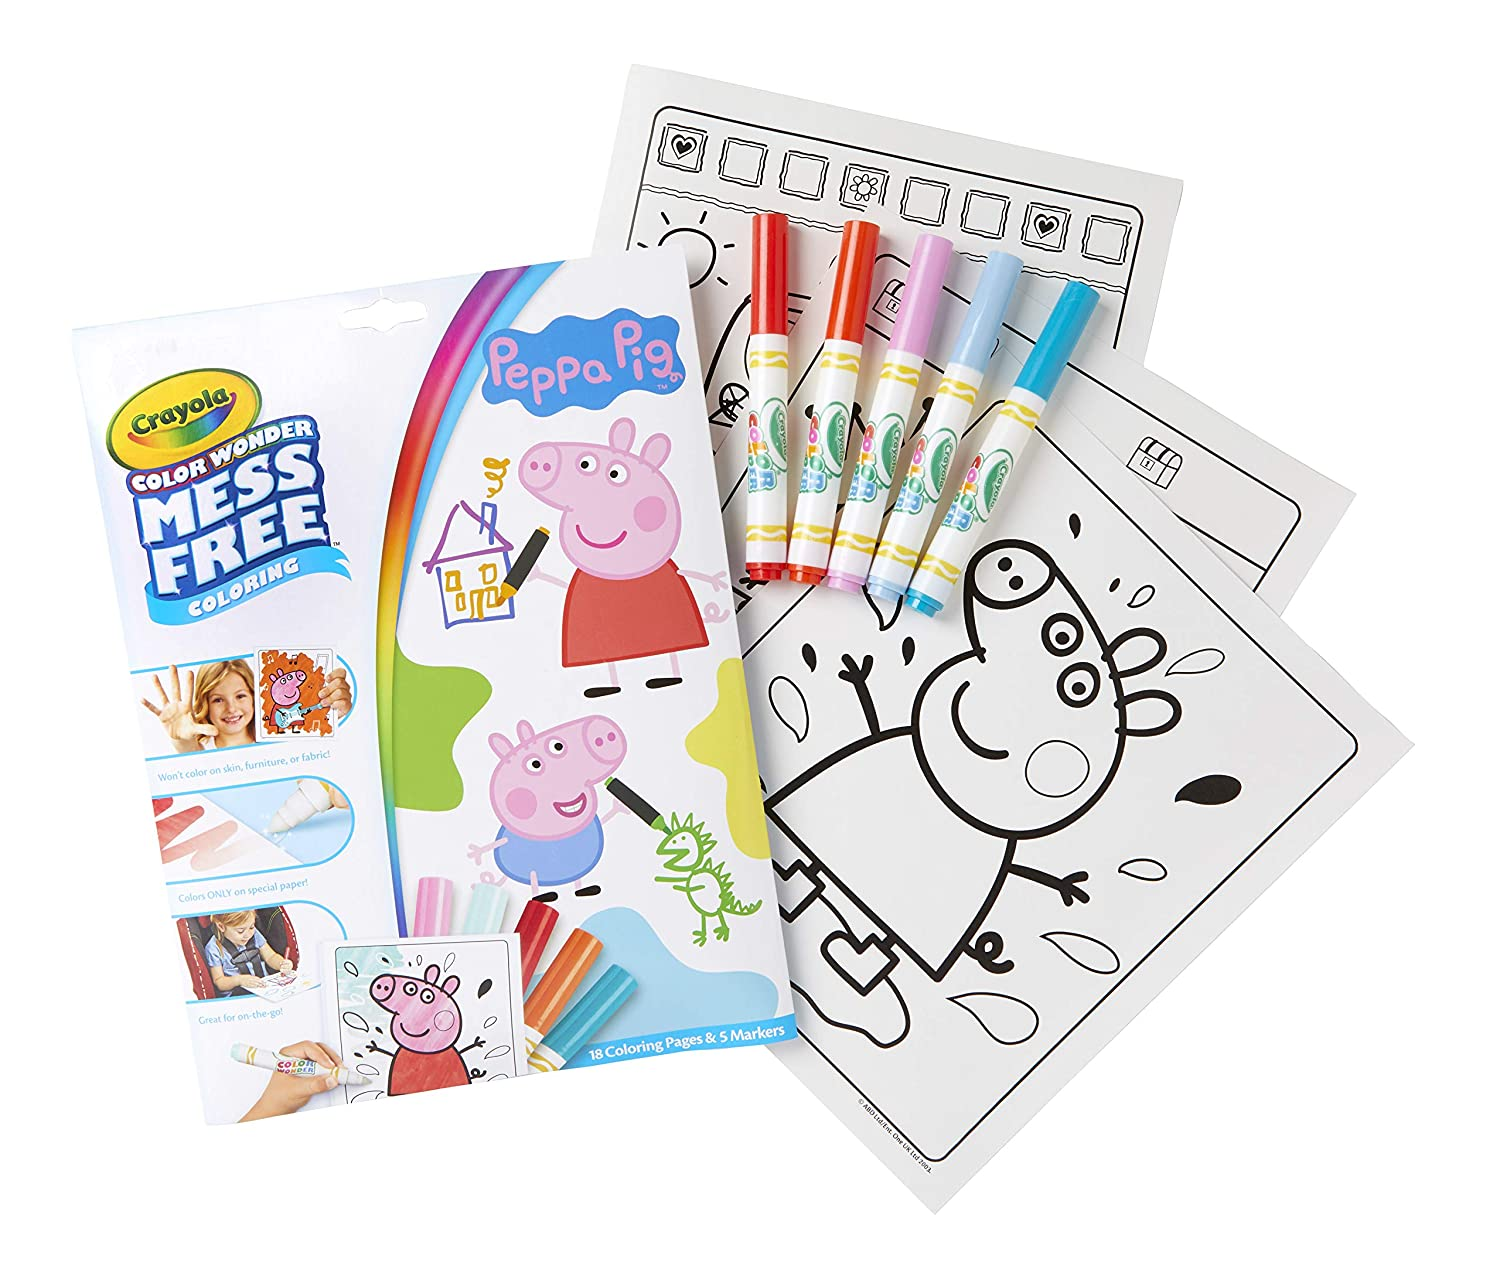 Crayola color wonder peppa pig coloring book pages markers mess free coloring gift for kids